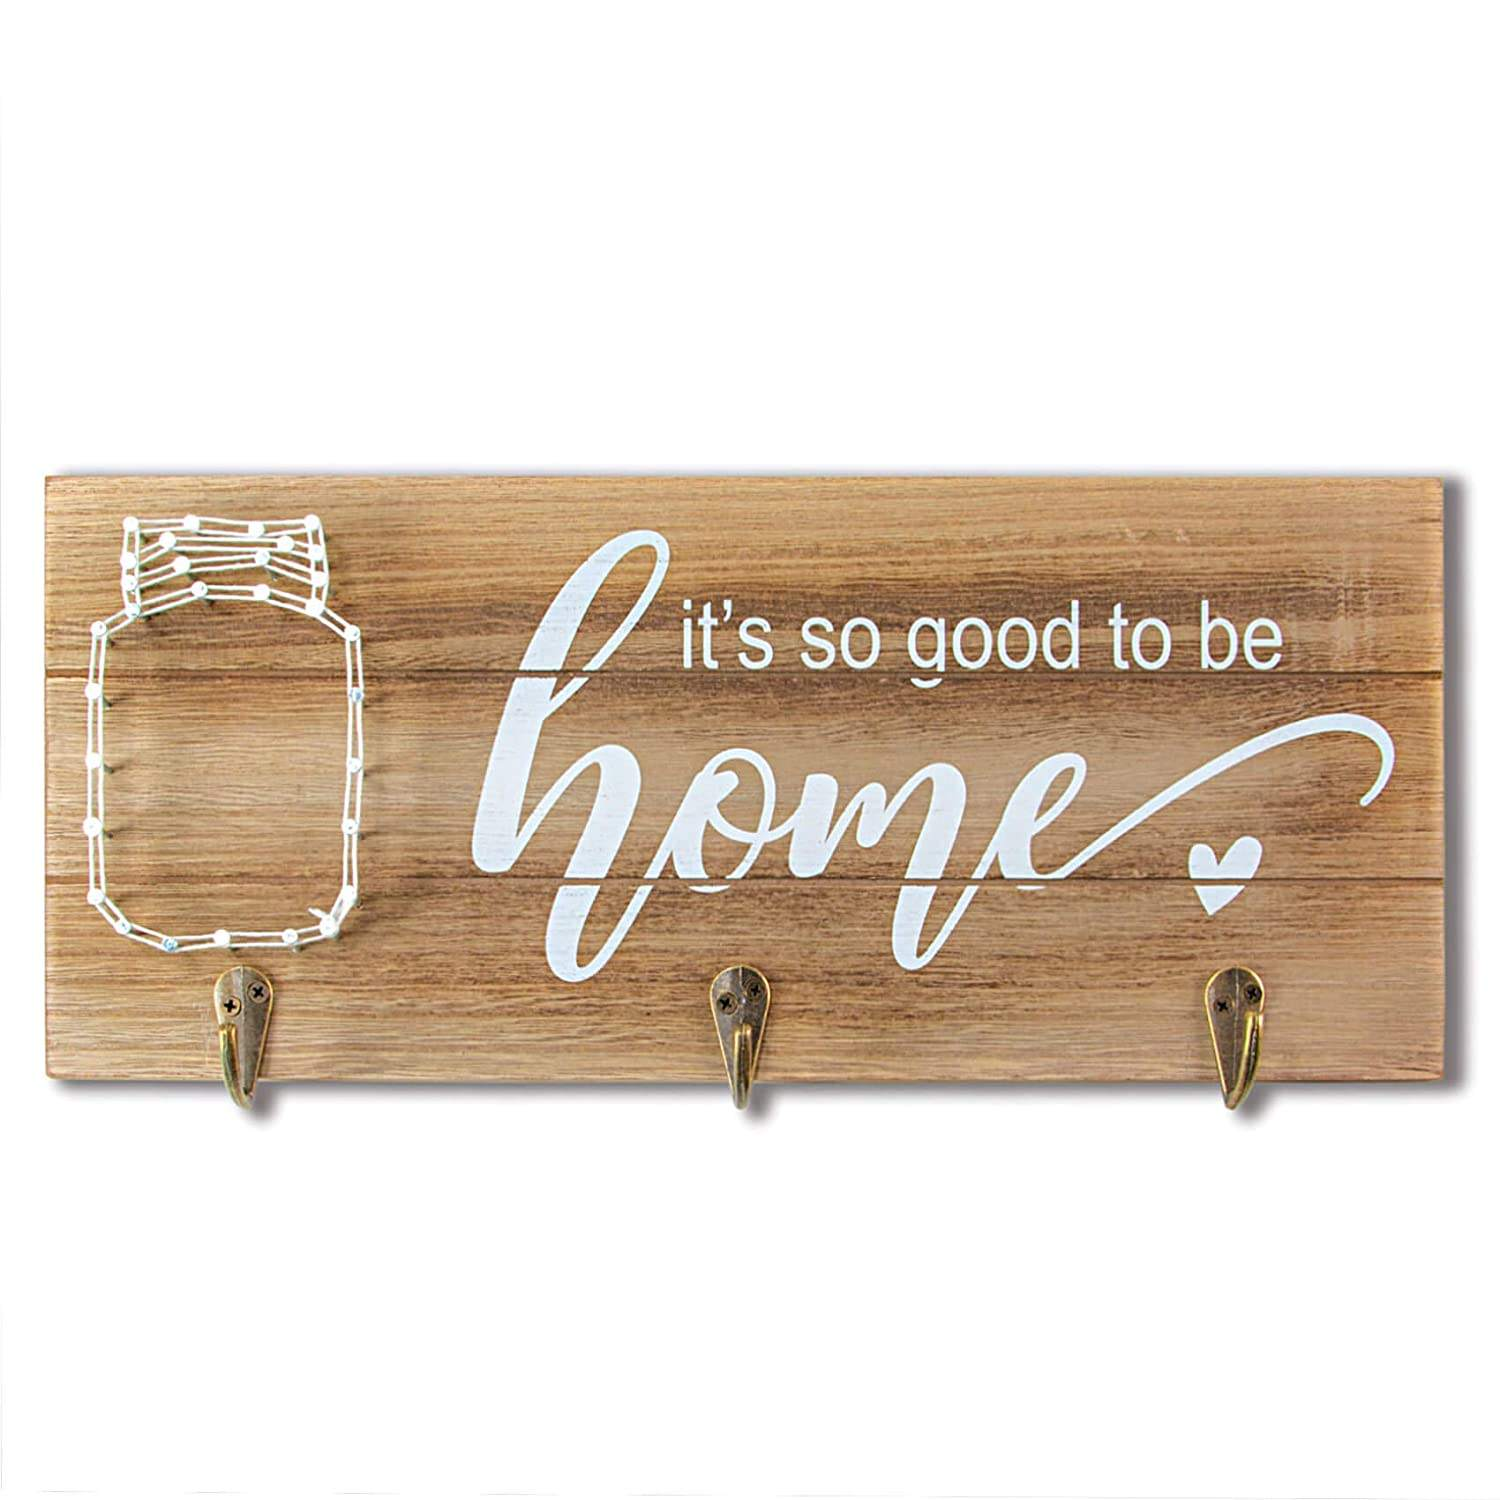 Farmhouse Key Holder with String Art Wall Decor Sign